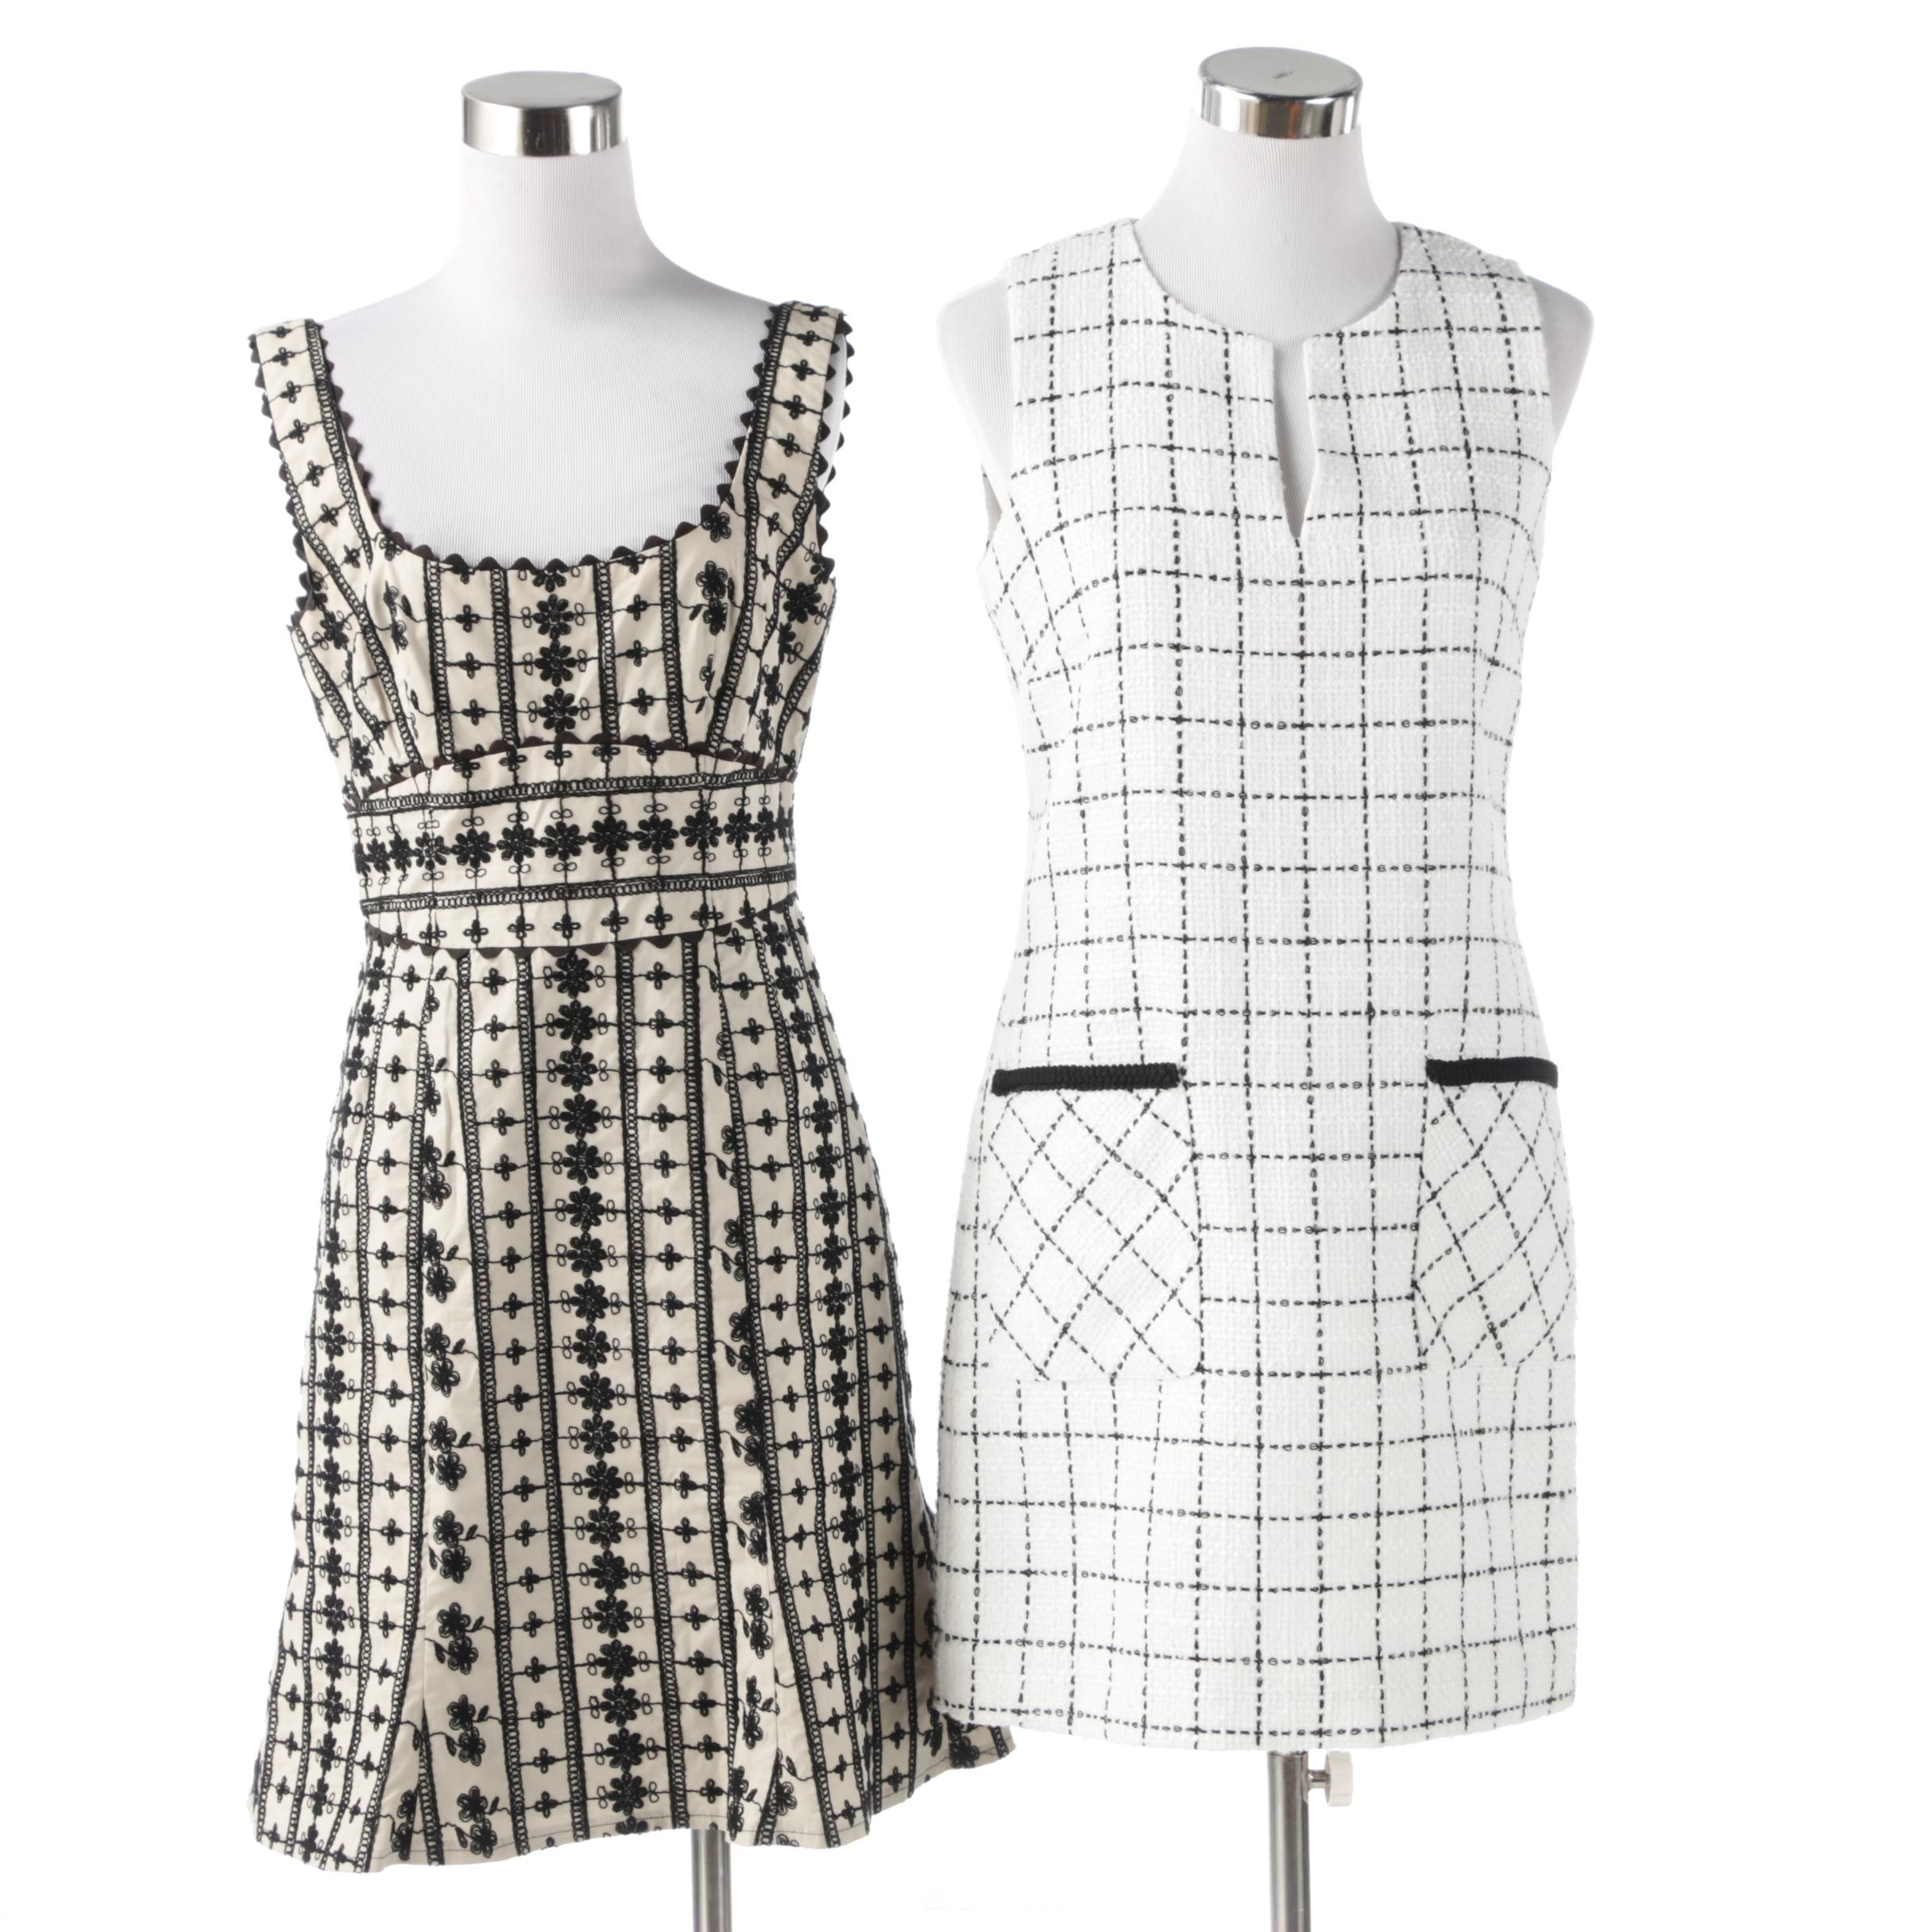 Karl Lagerfeld Paris Tweed Shift Dress and Nanette Lepore Embroidered Dress